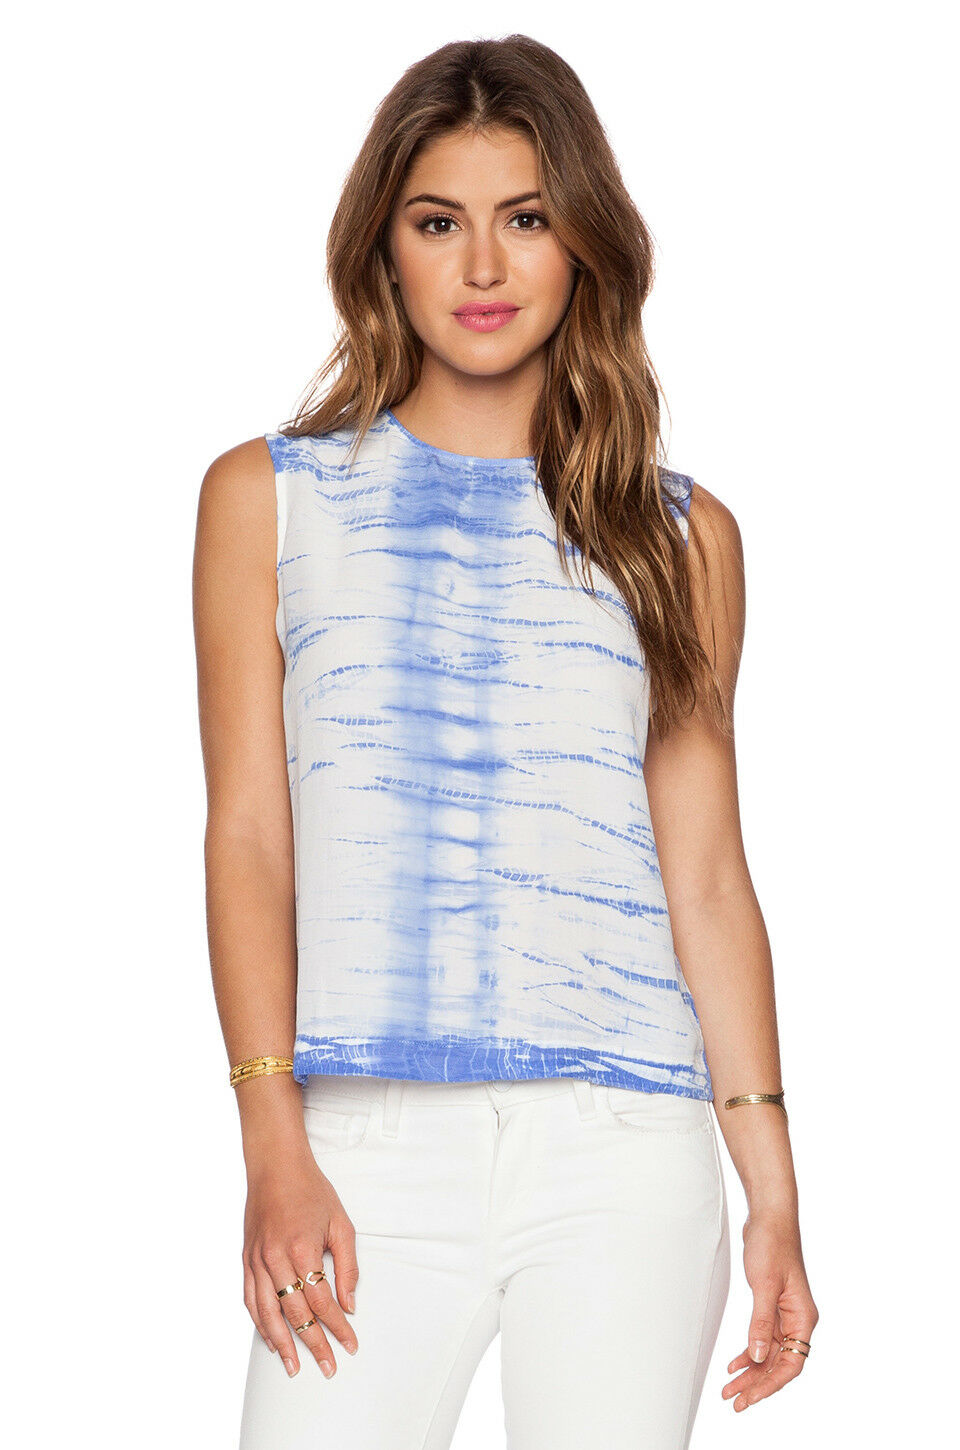 EQUIPMENT   AMPARO blueE TIE DYE SILK REAGAN BLOUSE TANK TOP SHIRT   S